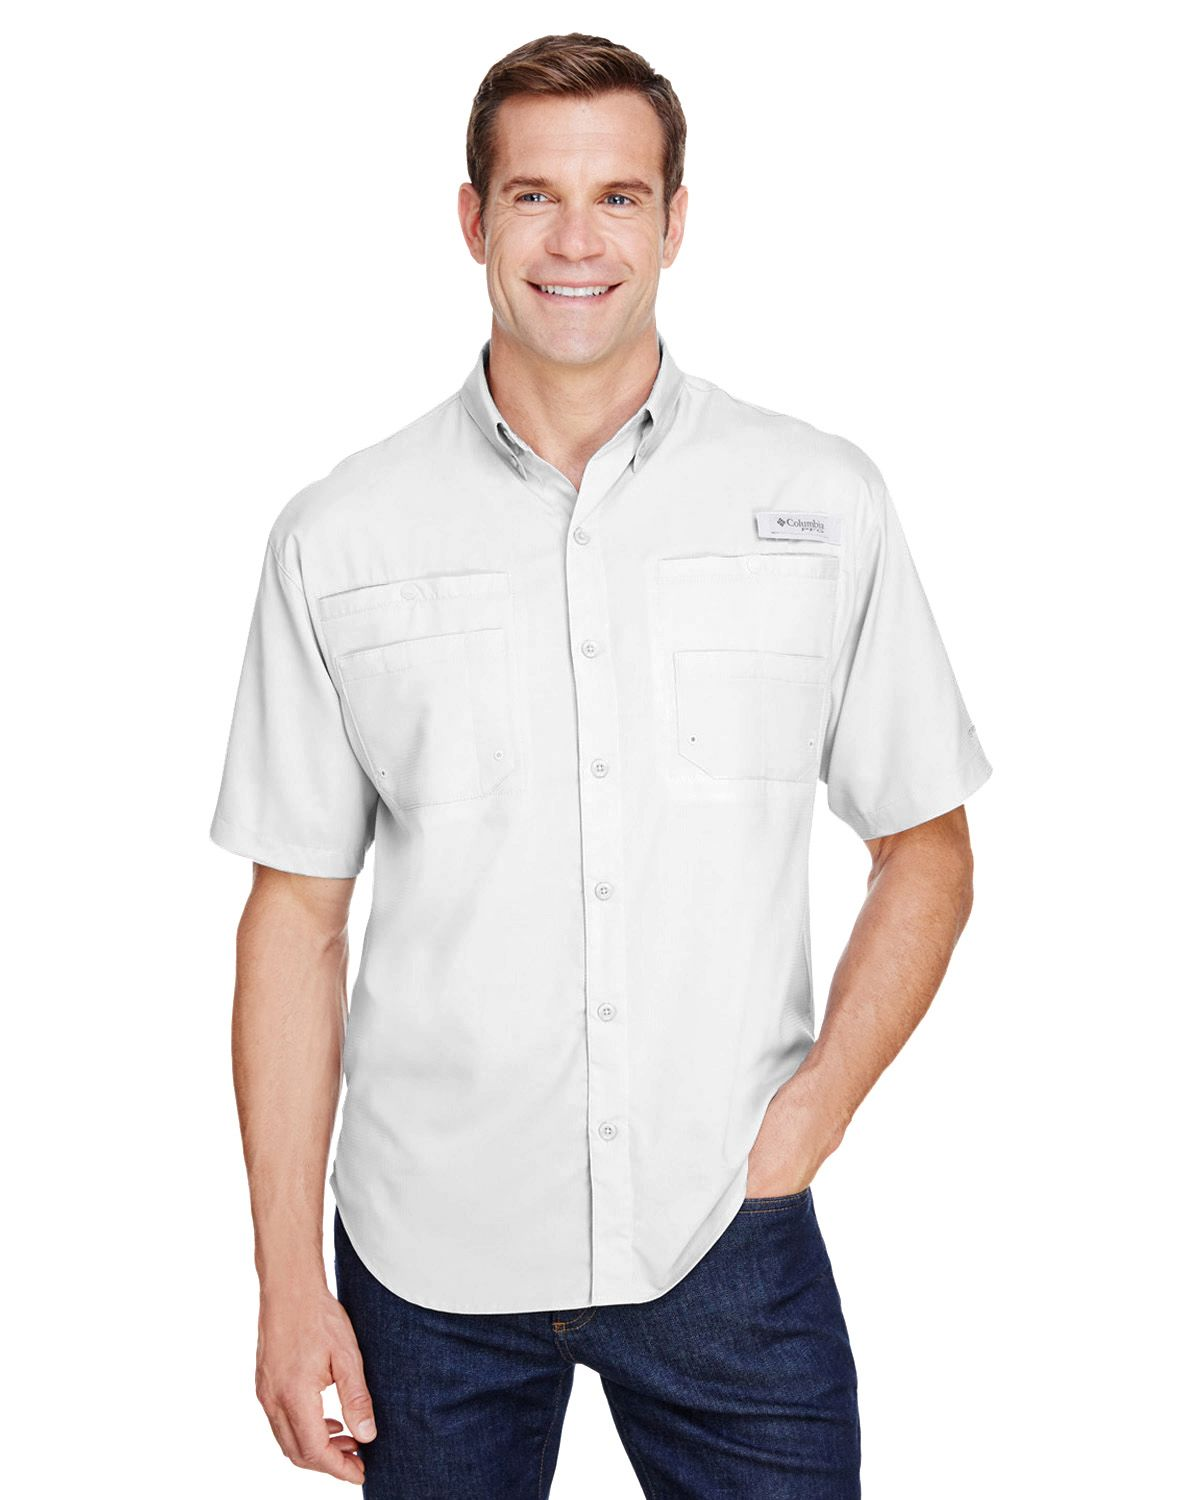 ab74acc87a1 Size Chart for Columbia 7266 Mens Tamiami II Short-Sleeve Shirt